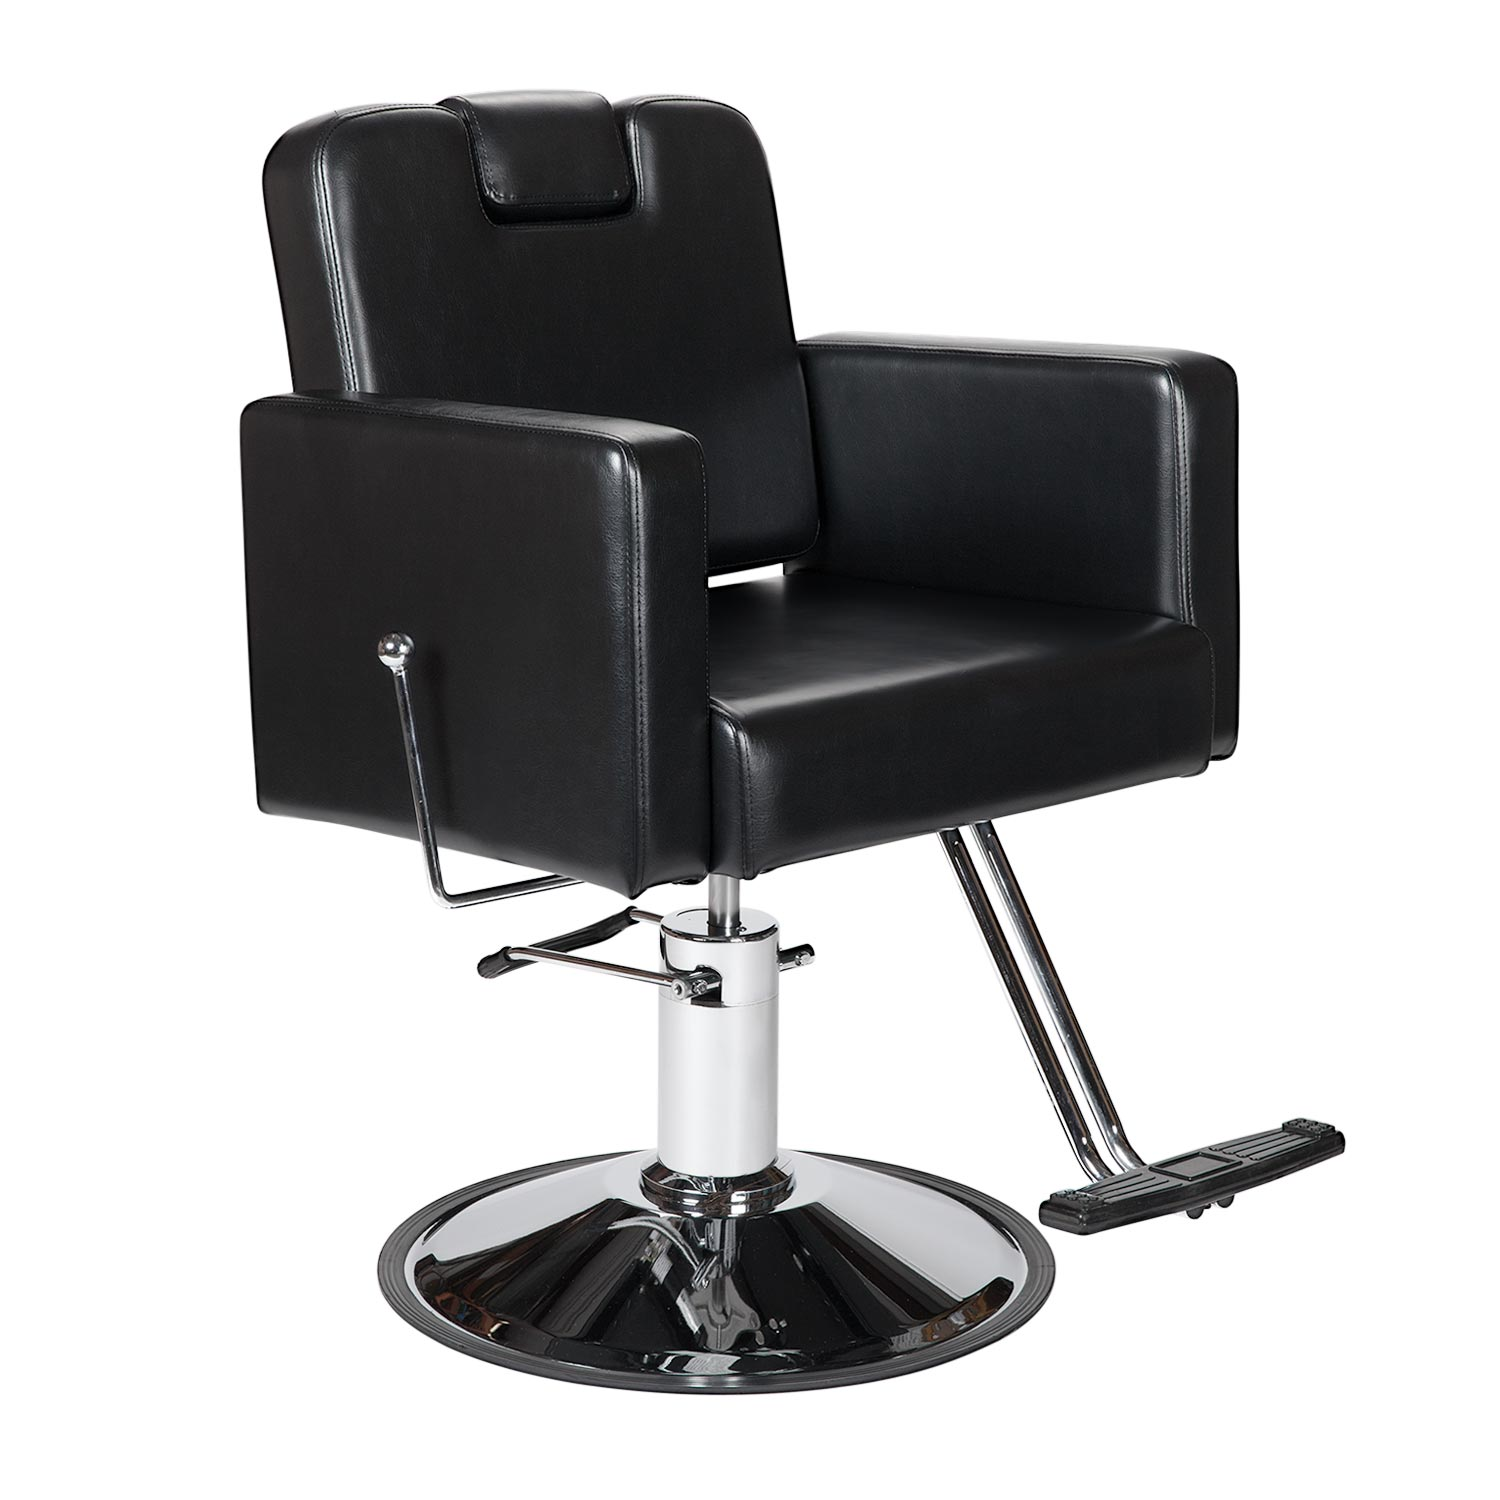 Black Havana All-Purpose Reclining Chair with Headrest  main product image